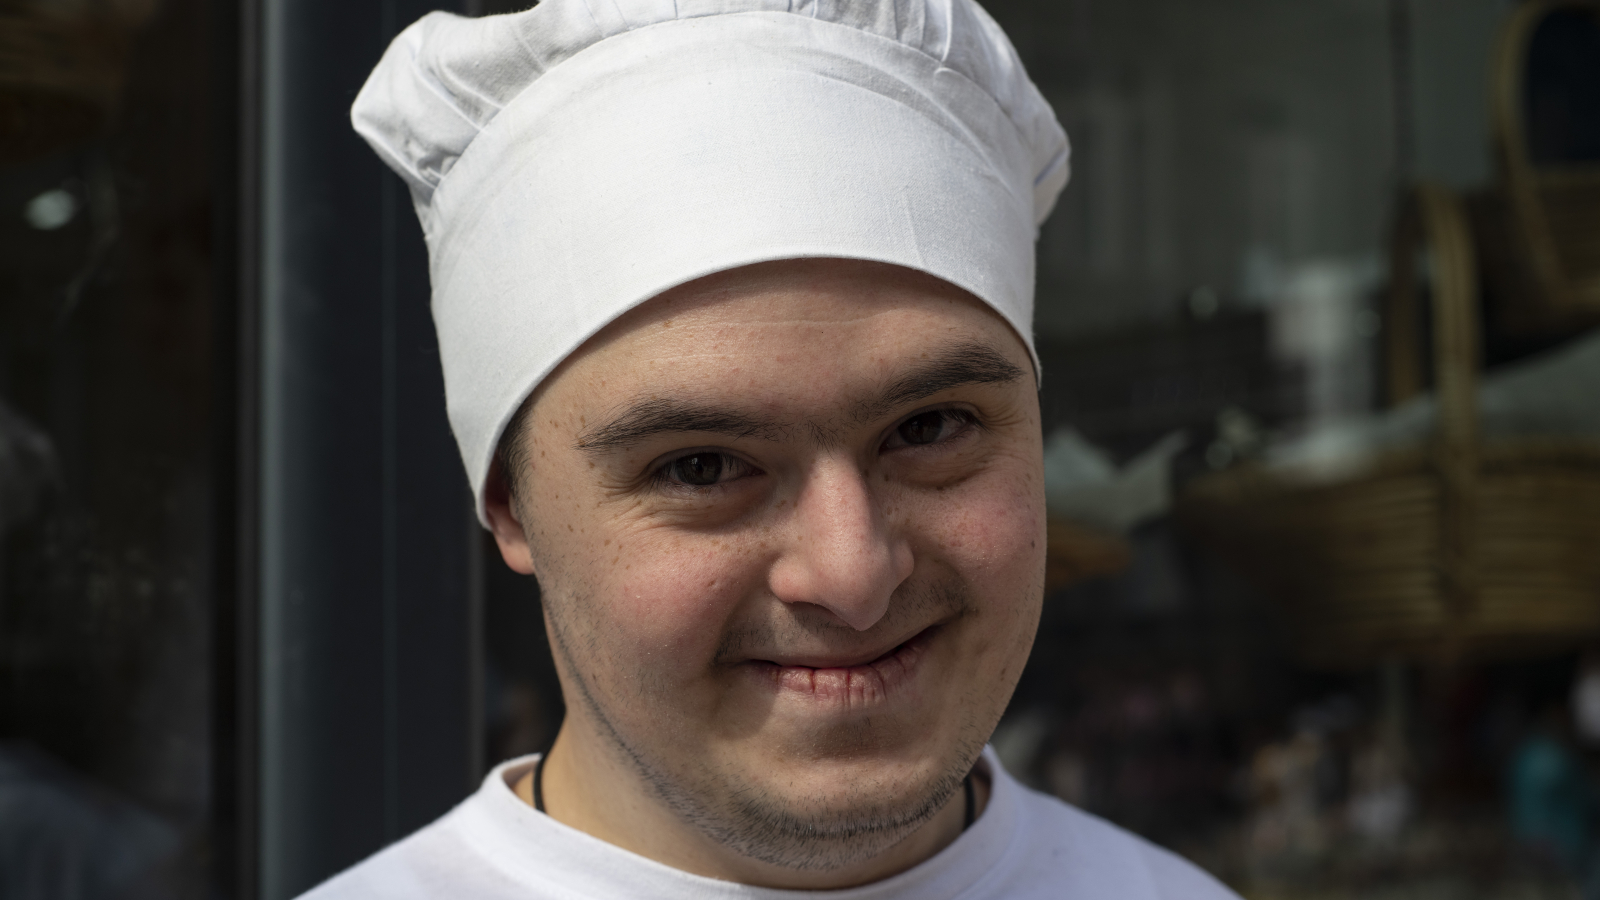 Mikael Saakyan is 20 years old. He is an assistant to a baker at the inclusive bakery (Photo by Nazik Armenakian)